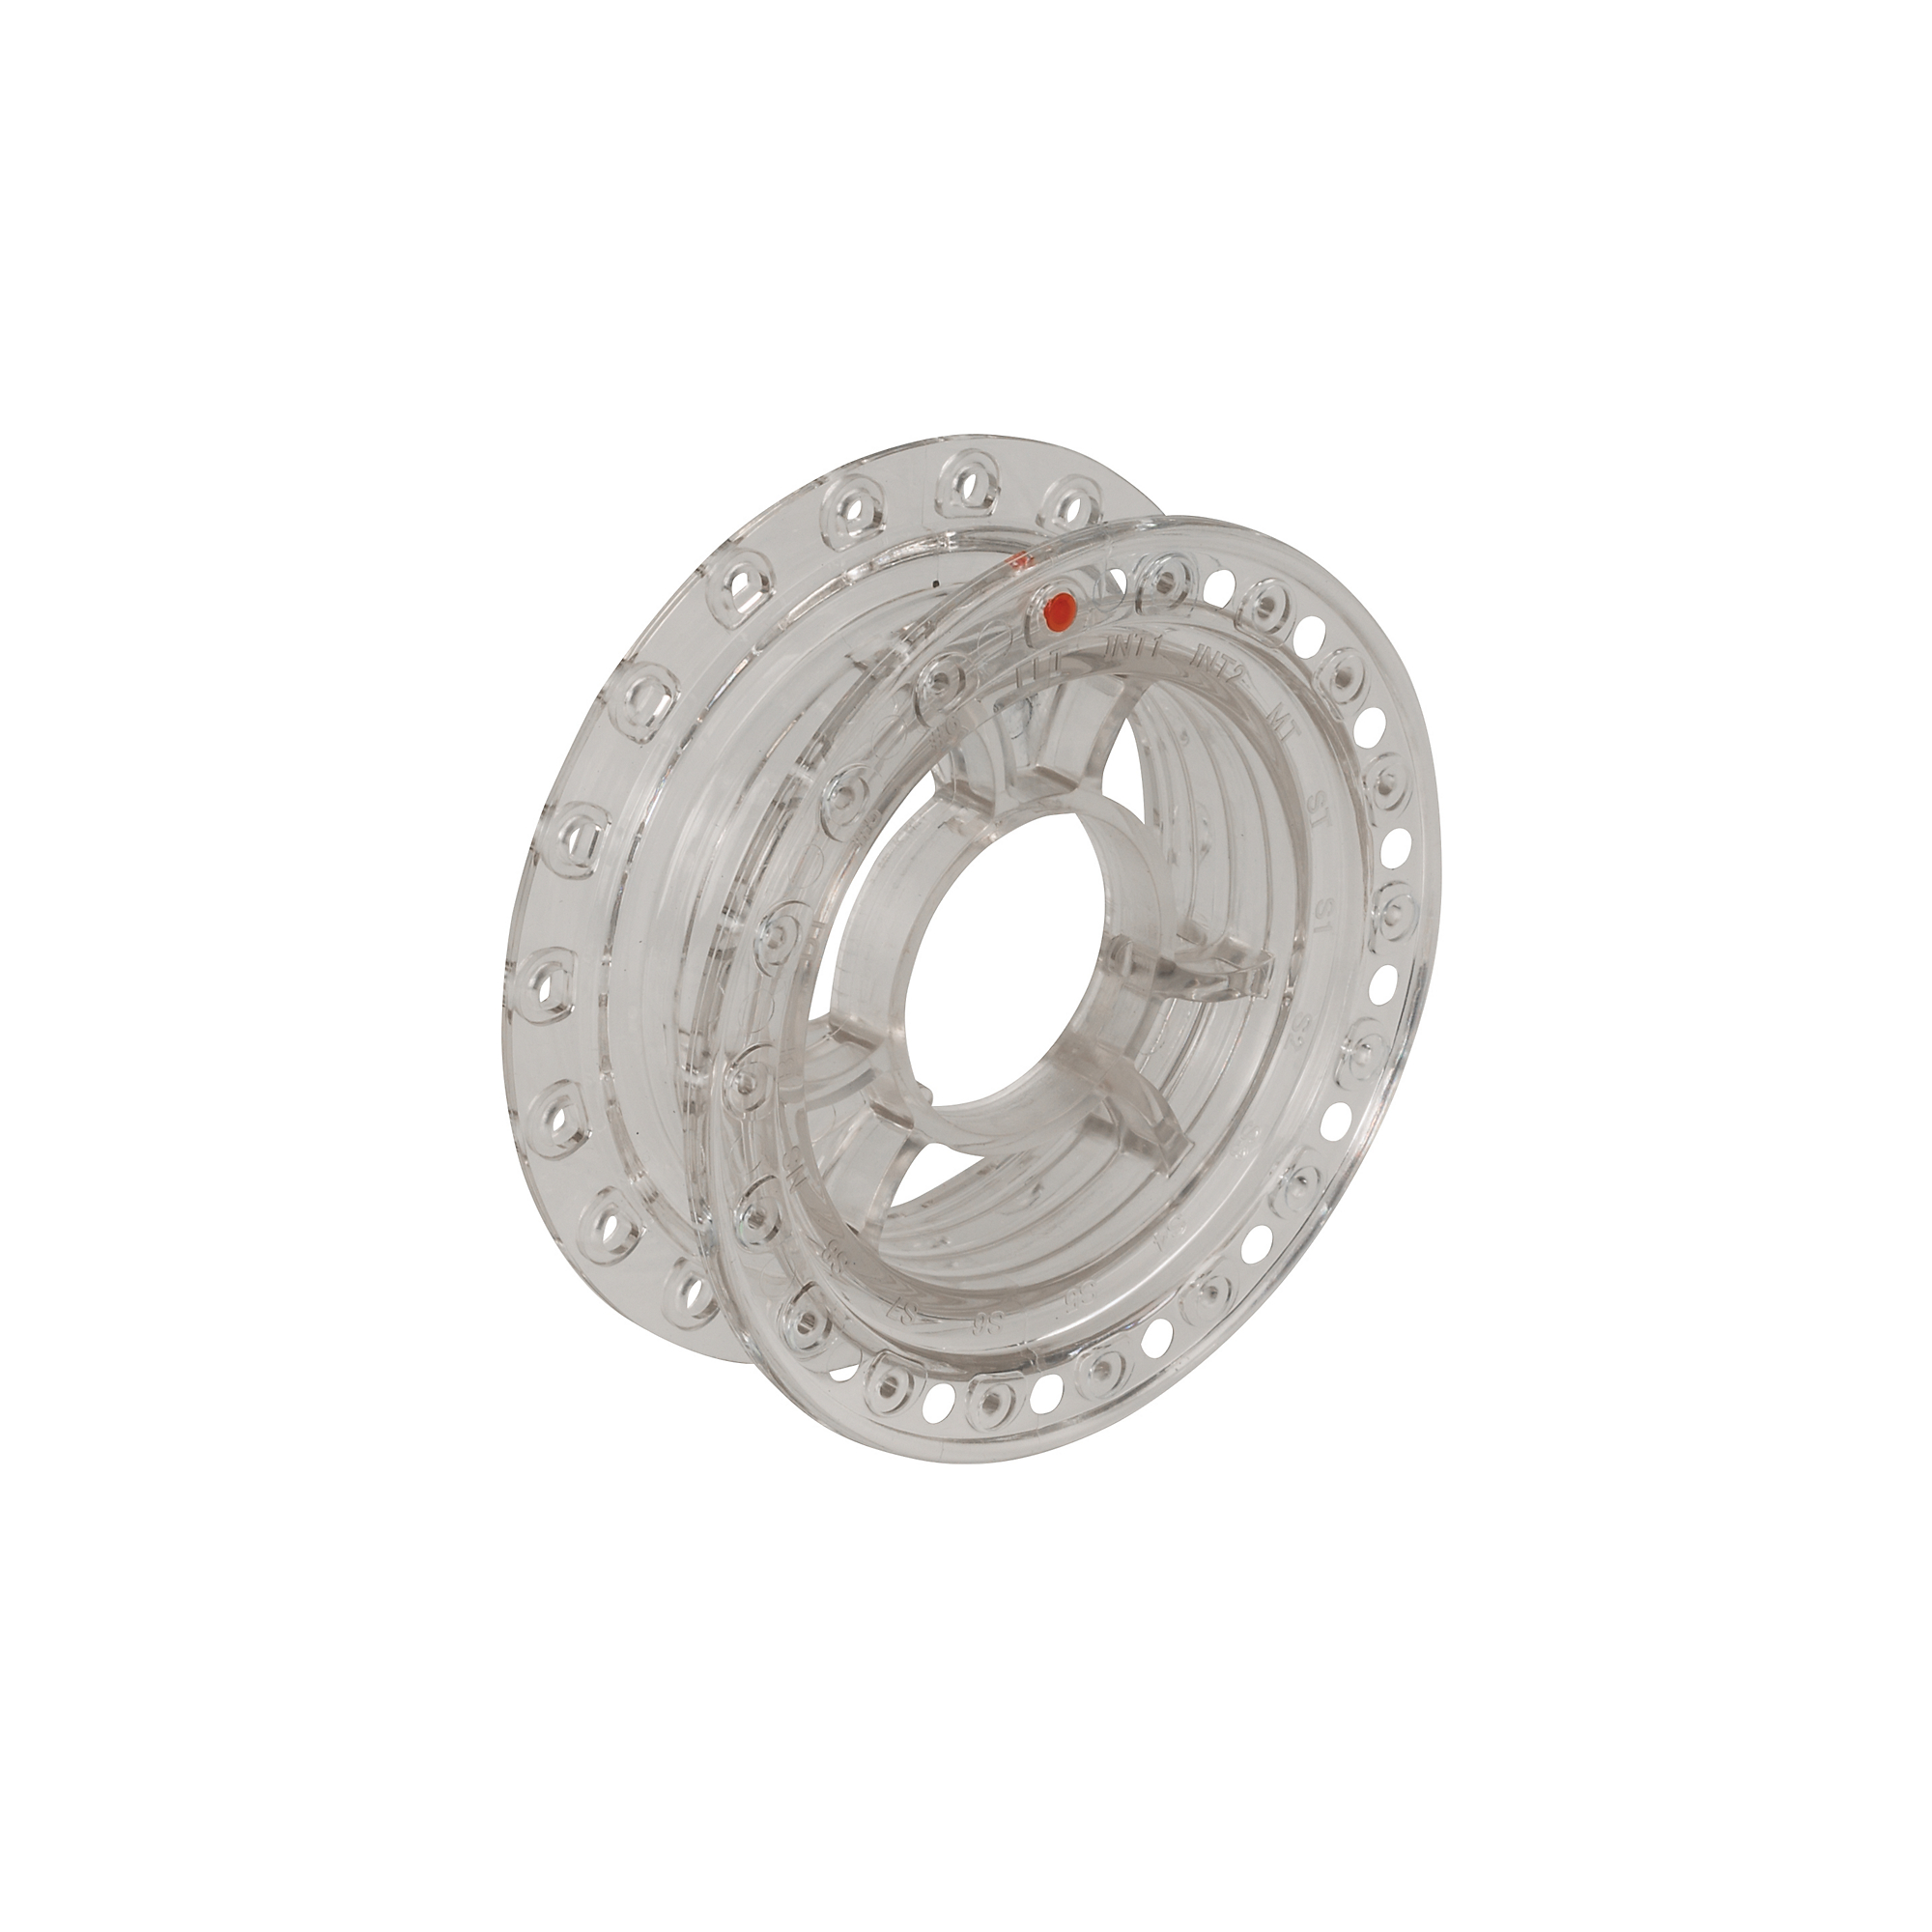 Greys QRS Spool